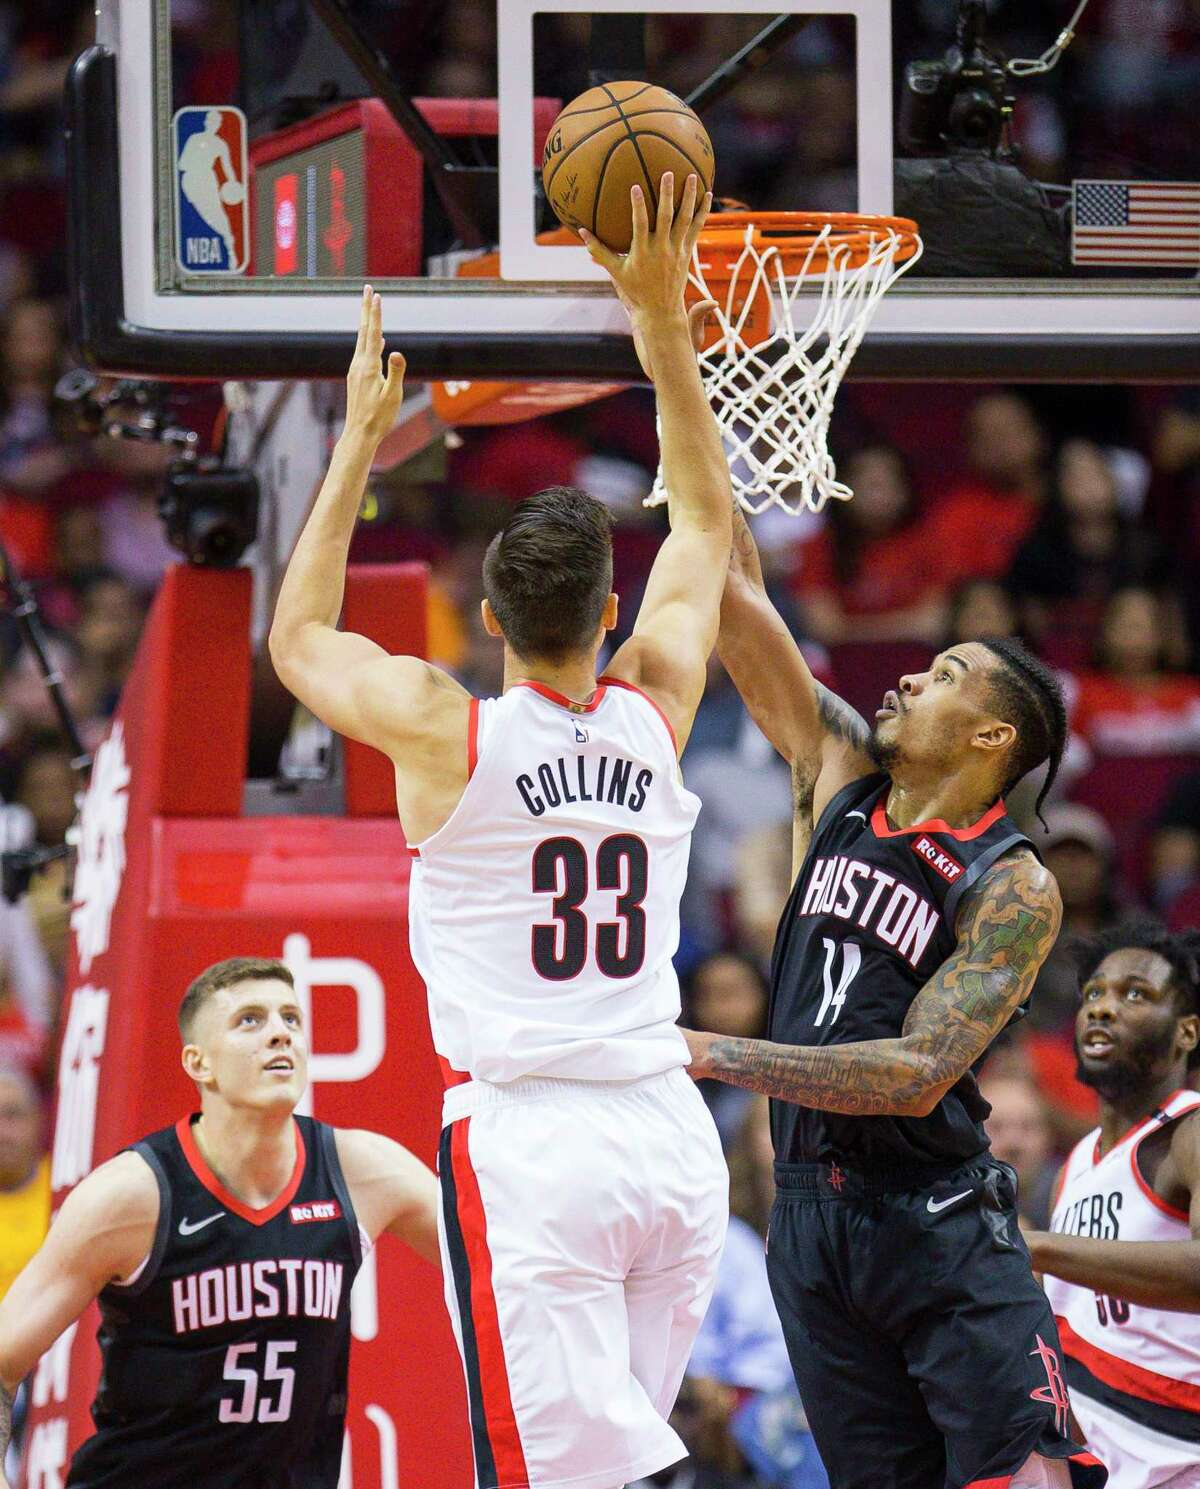 Portland Trail Blazers forward Zach Collins (33) shoots over Houston Rockets guard Gerald Green (14) during the first half of an NBA game, Tuesday, Oct. 30, 2018, at Toyota Center in Houston.